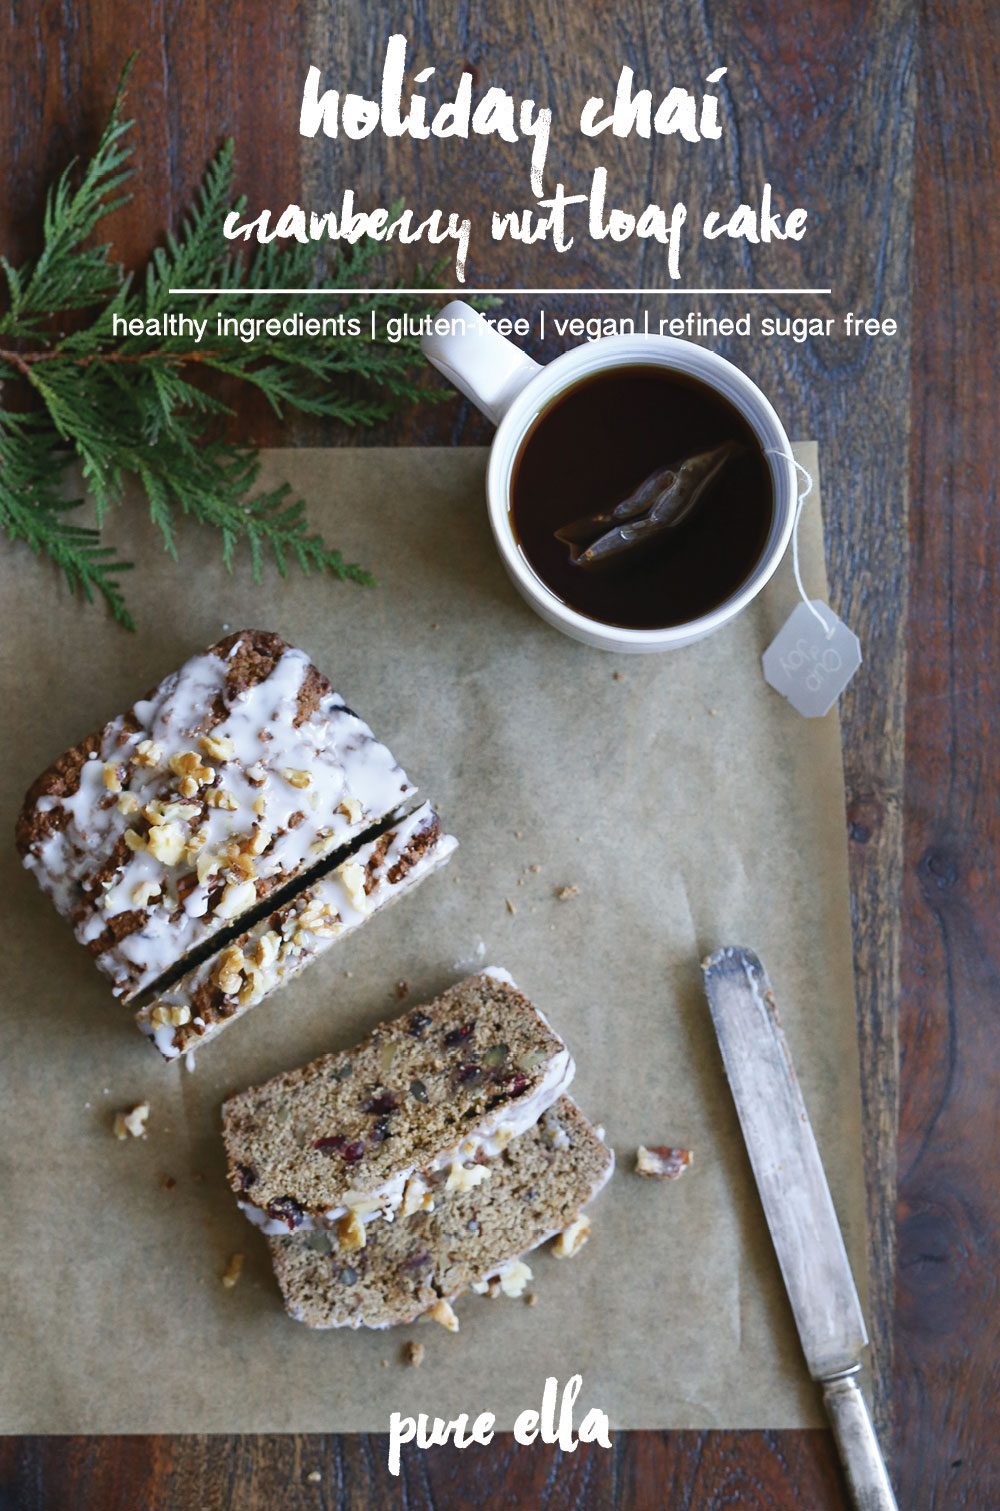 holiday-chai-cranberry-nut-loaf-cake-pure-ella-leche